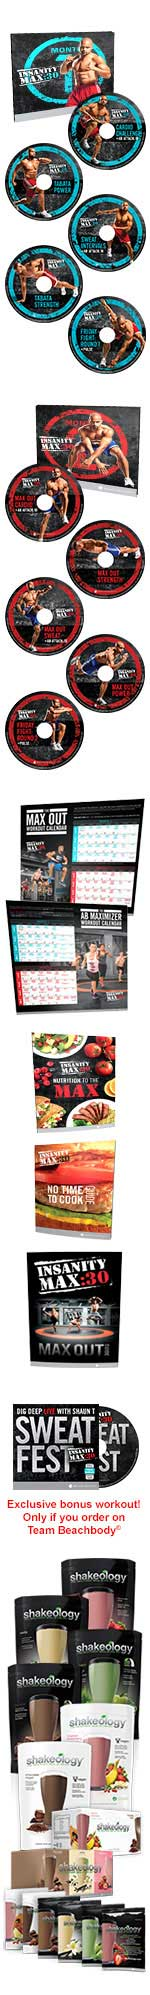 Insanity Max 30 Challenge Pack